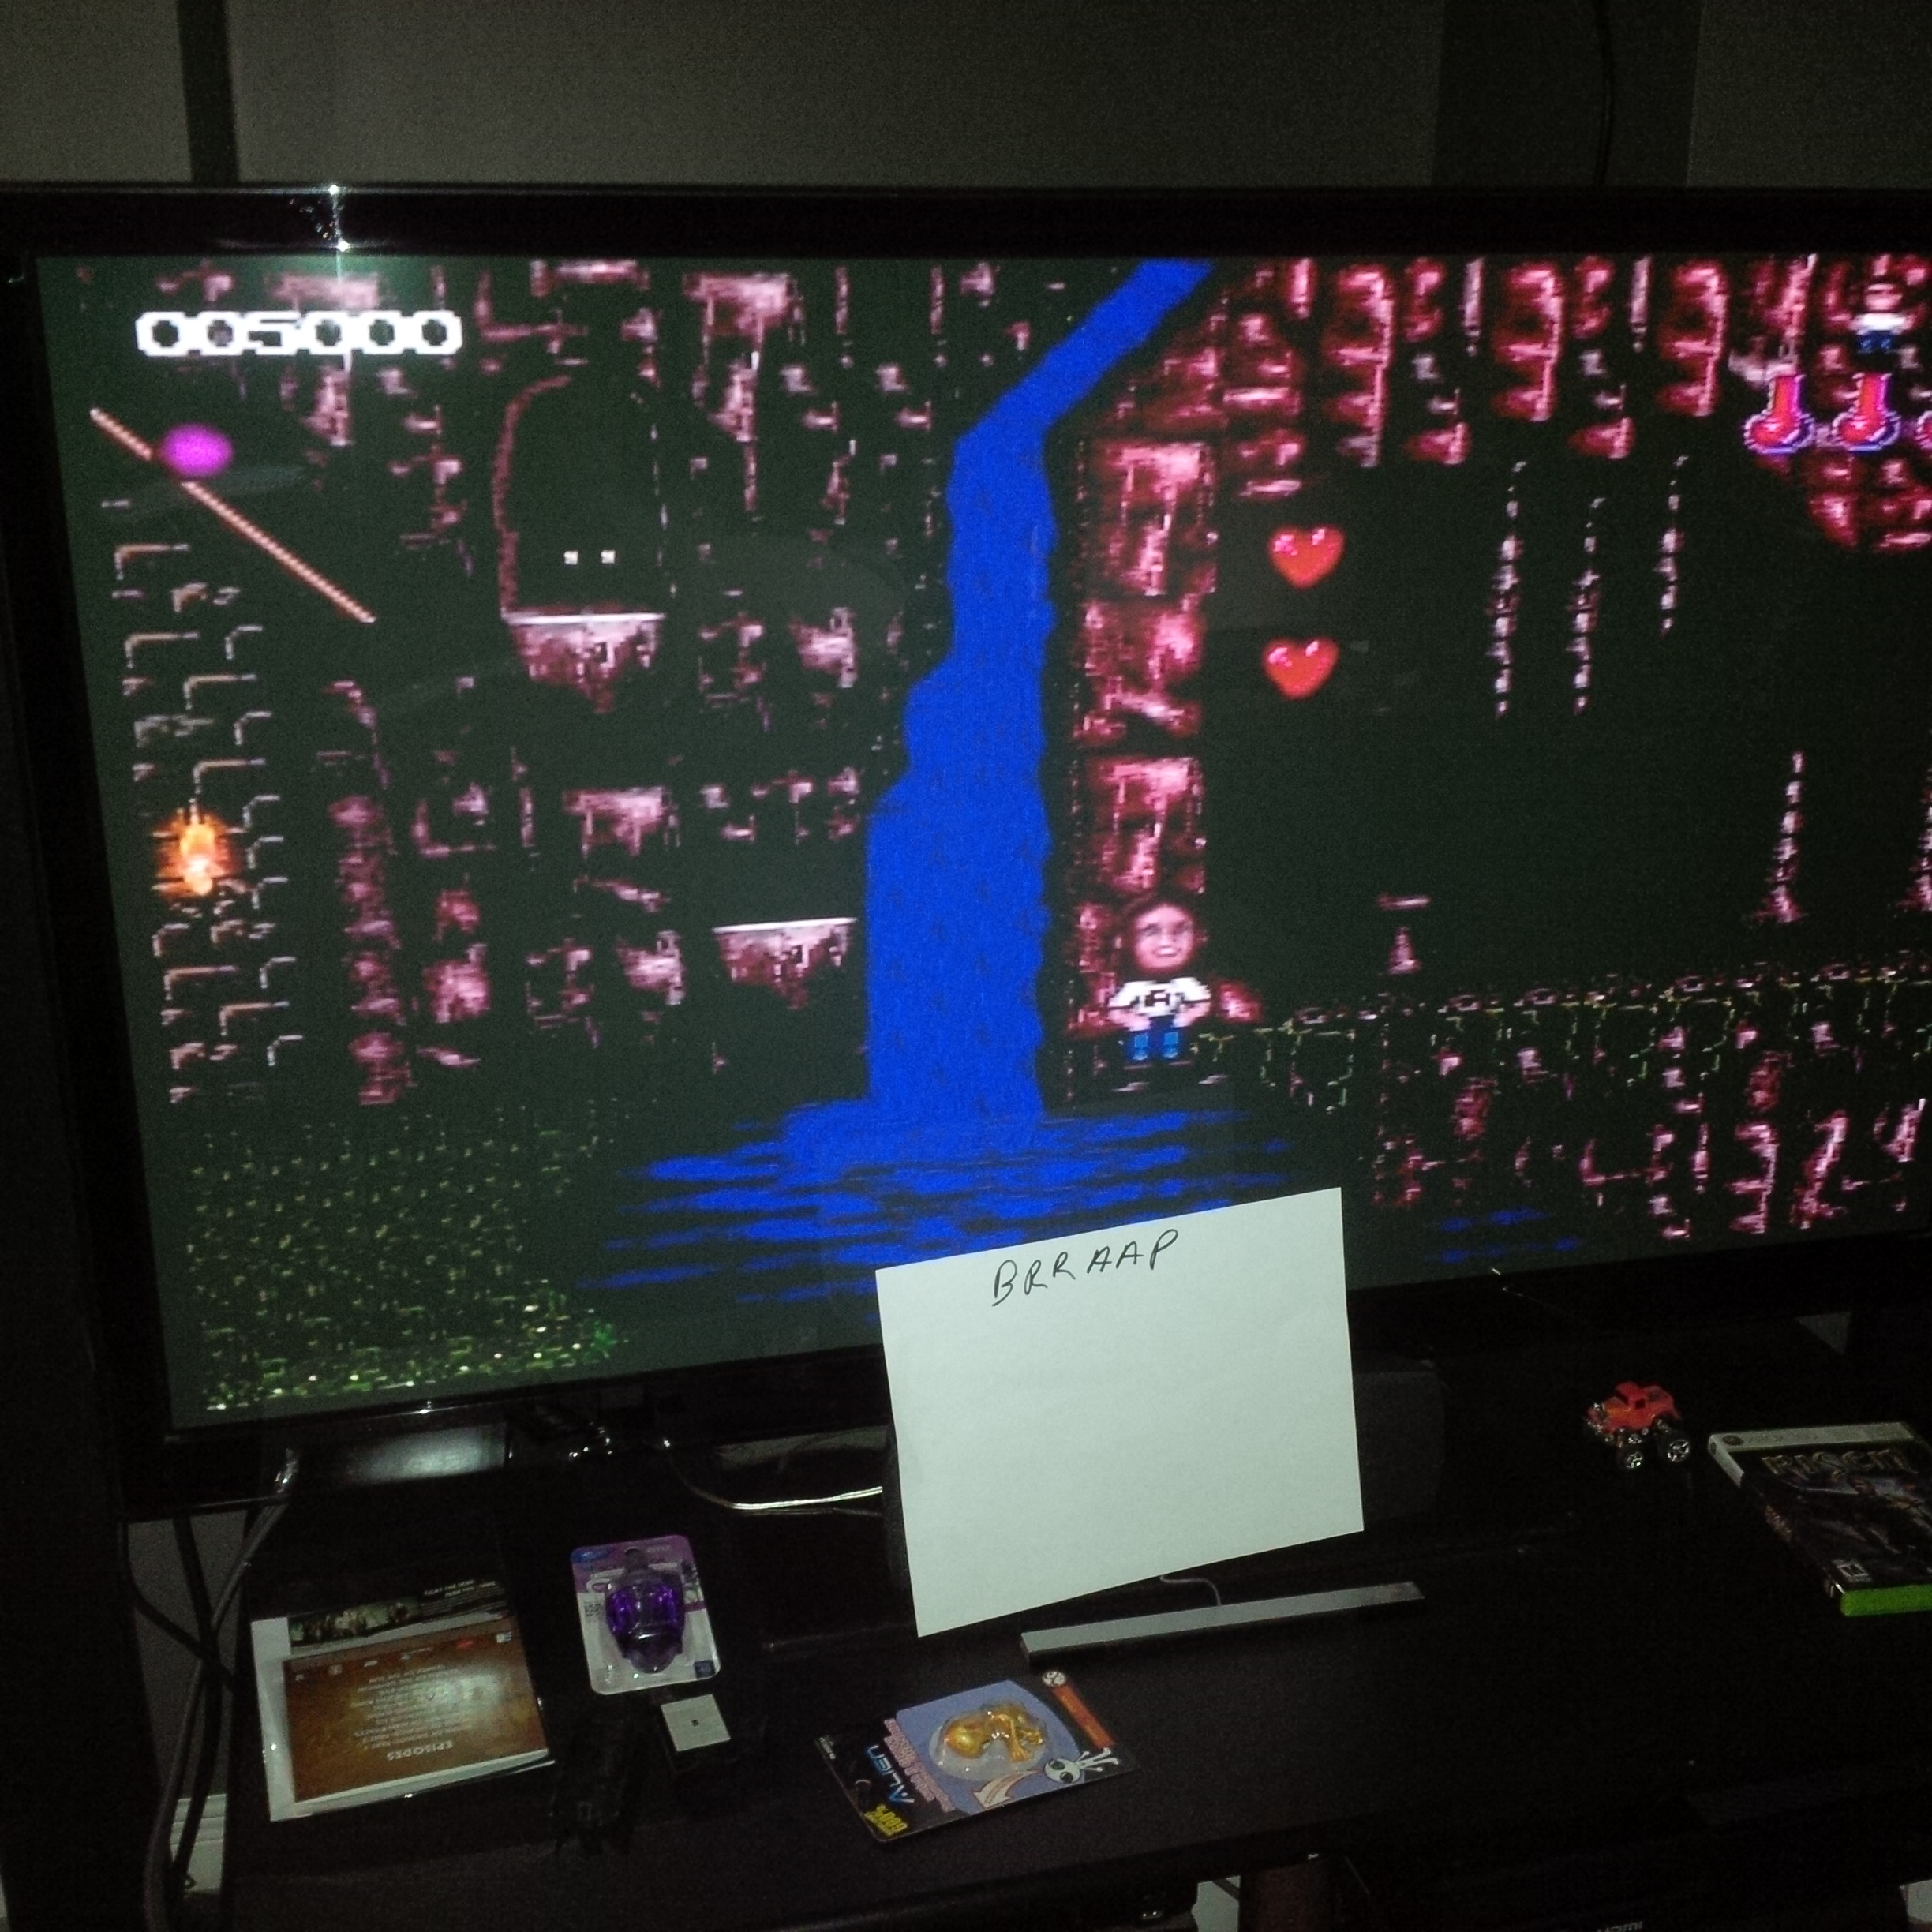 brraap: Ghost Manor (TurboGrafx-16/PC Engine) 5,000 points on 2014-10-18 11:45:11